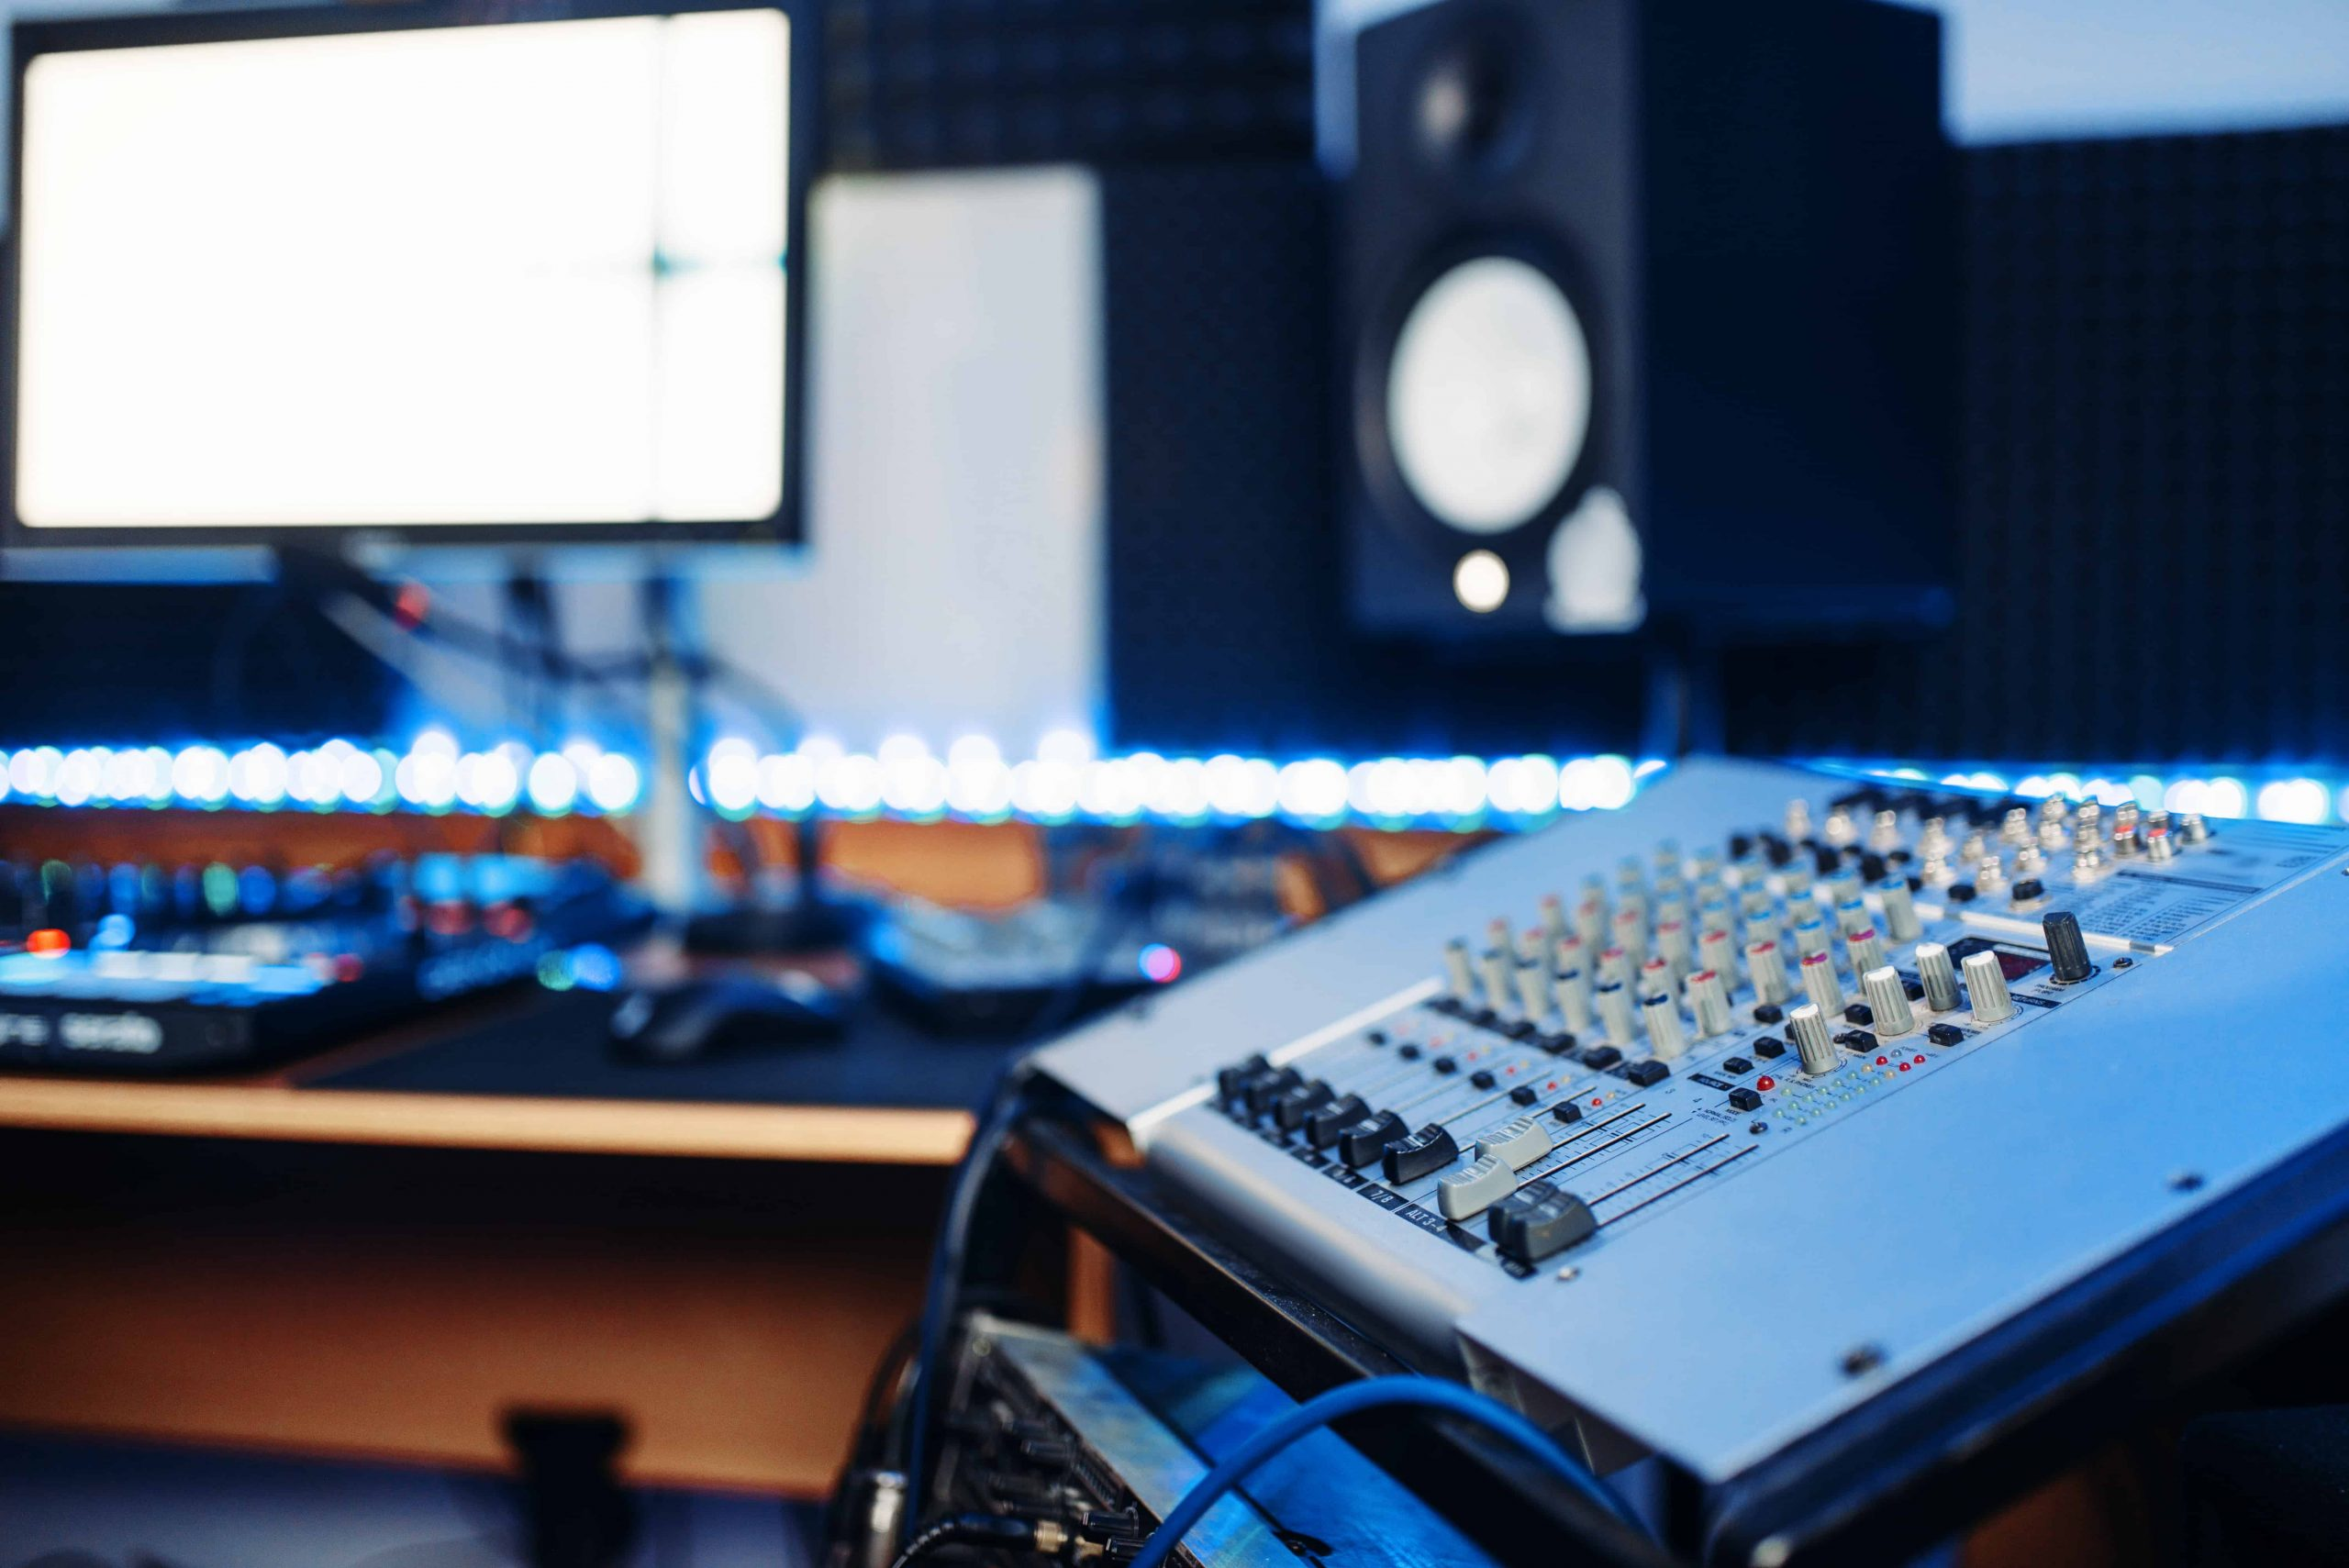 Silen Media provides custom sound design and implementation for video games. We are versed with WWise, FMod, Unreal, Unity, and many middleware solutions.